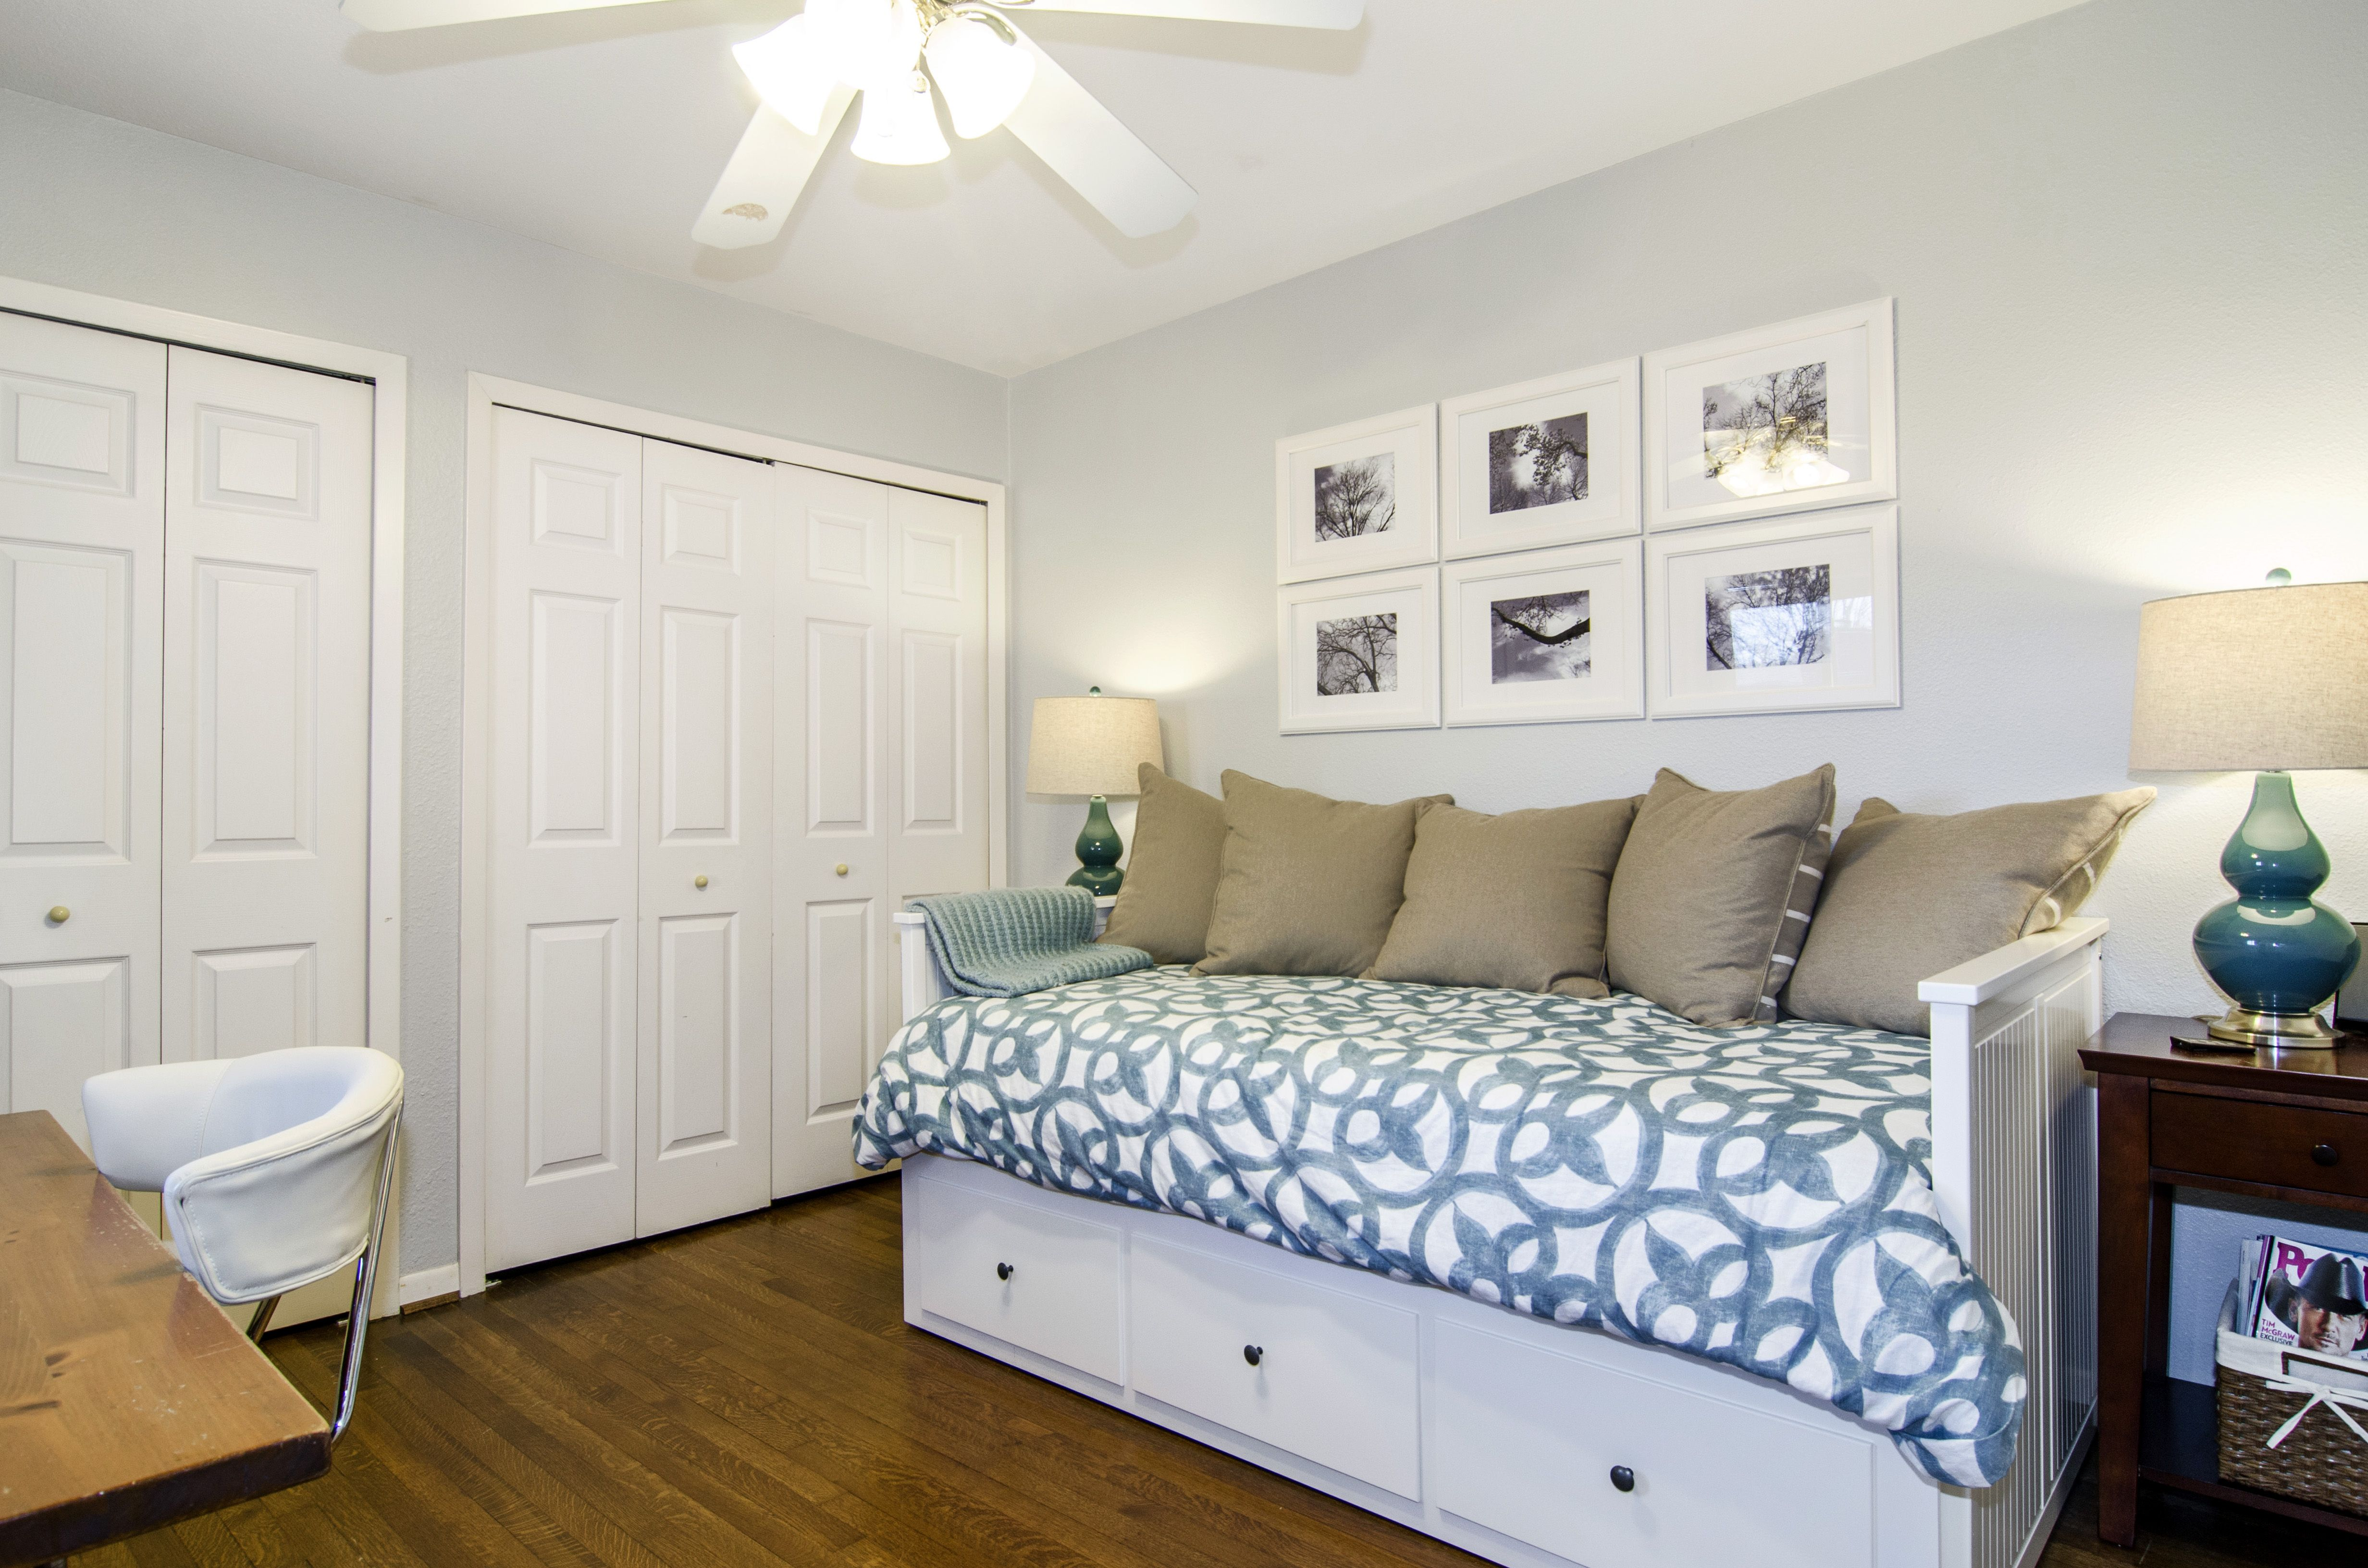 Office/ guest room combo Home Decorating Ideas Pinterest